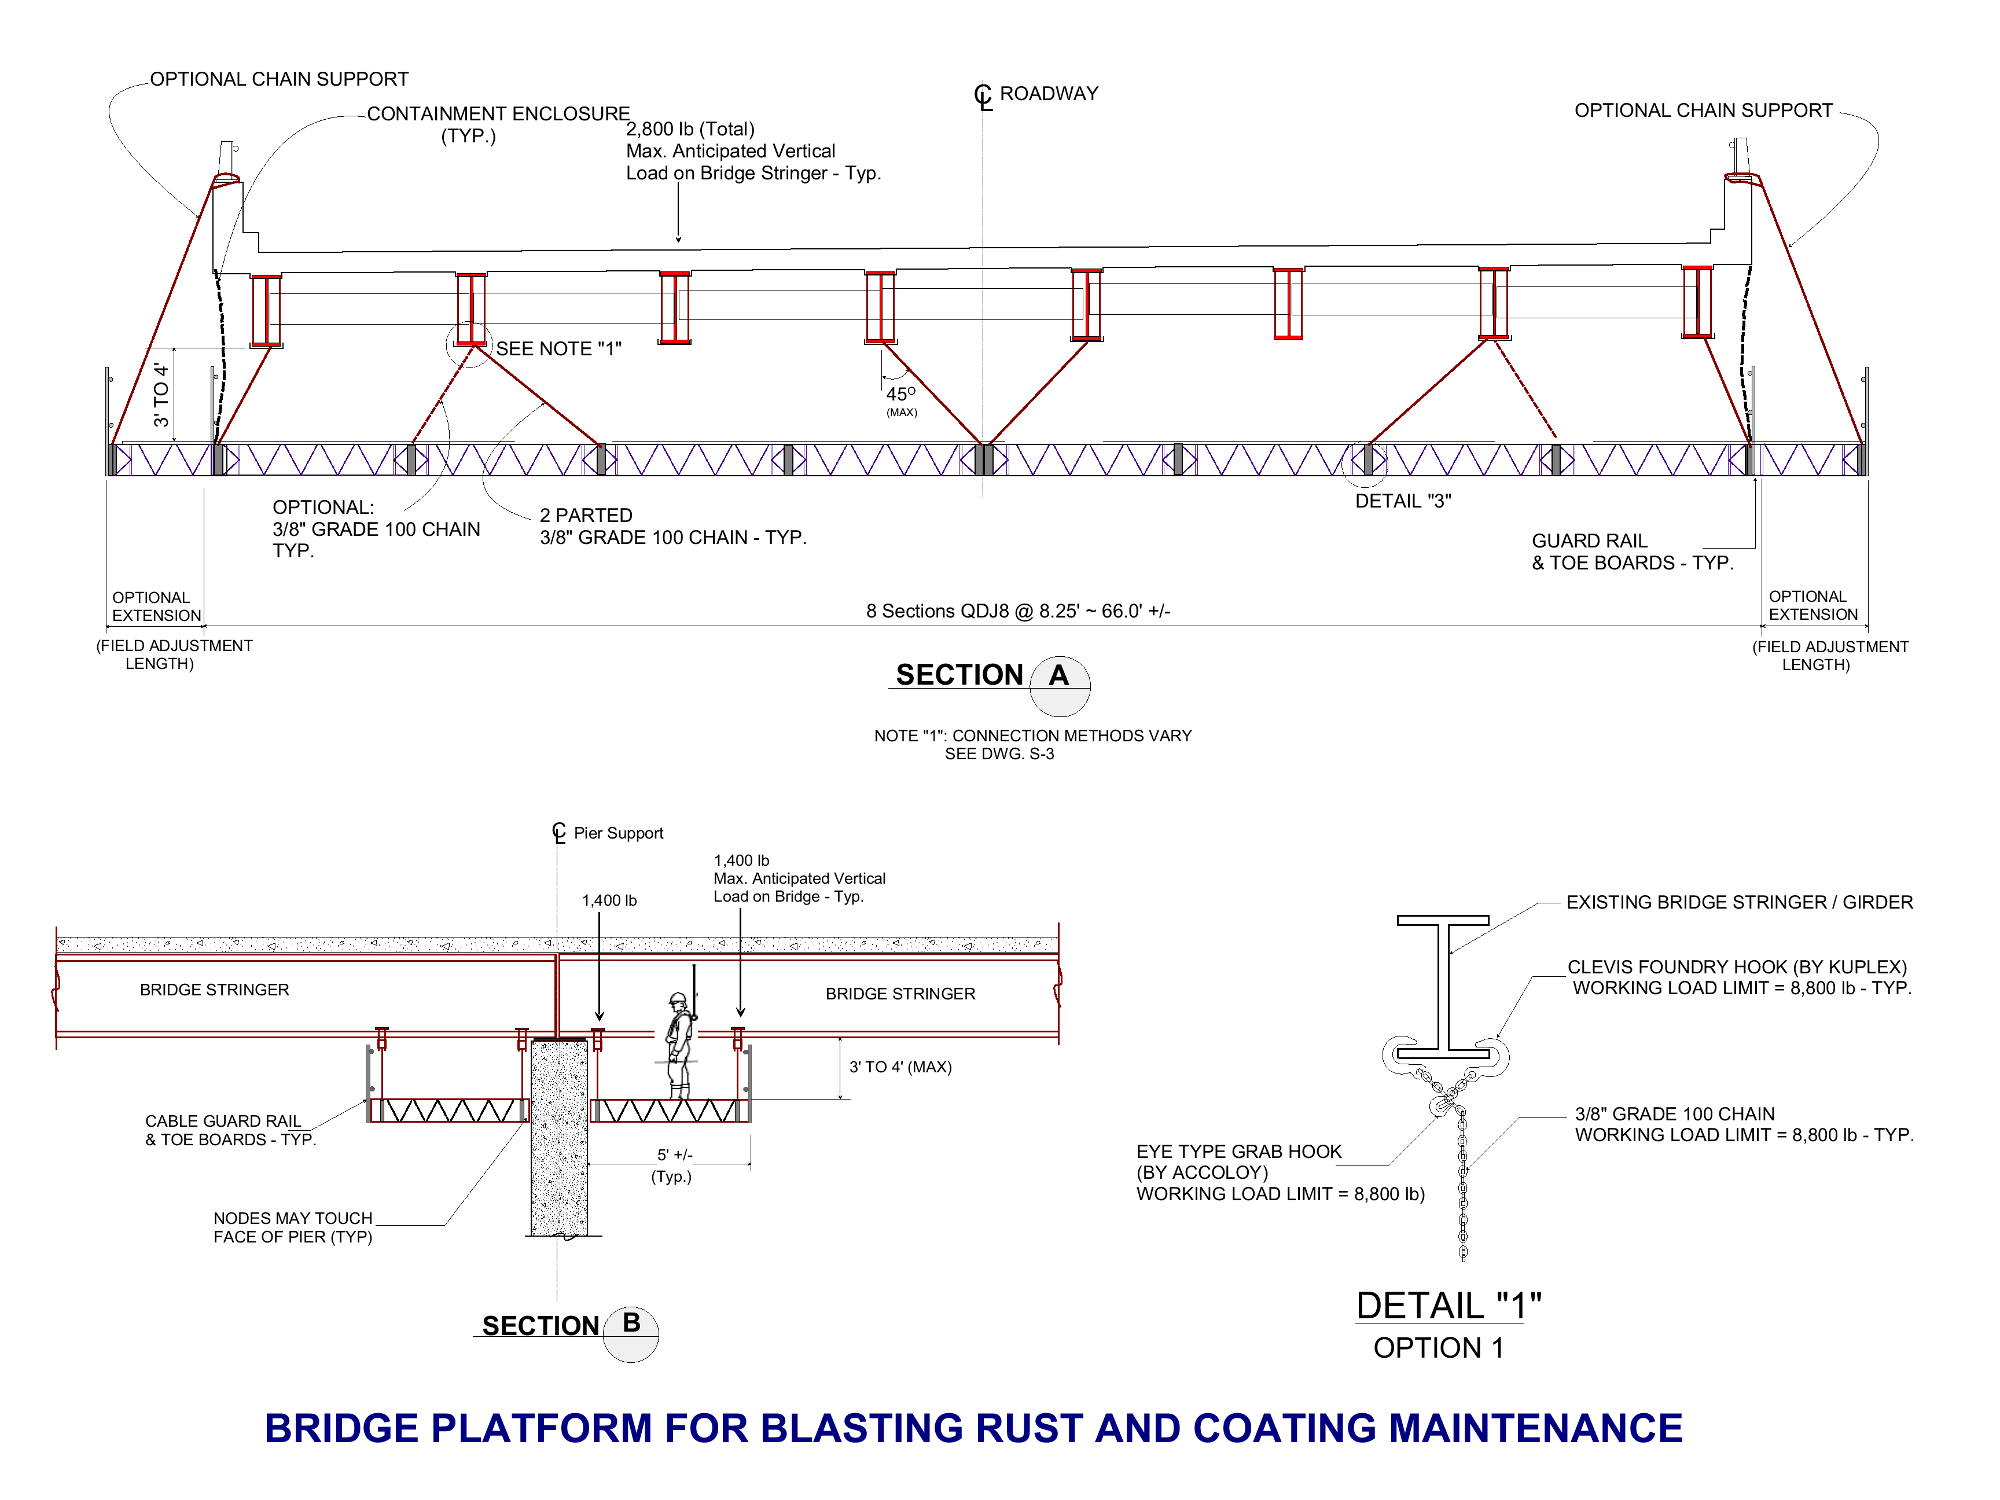 BRIDGE PLATFORM MAINTENANCE